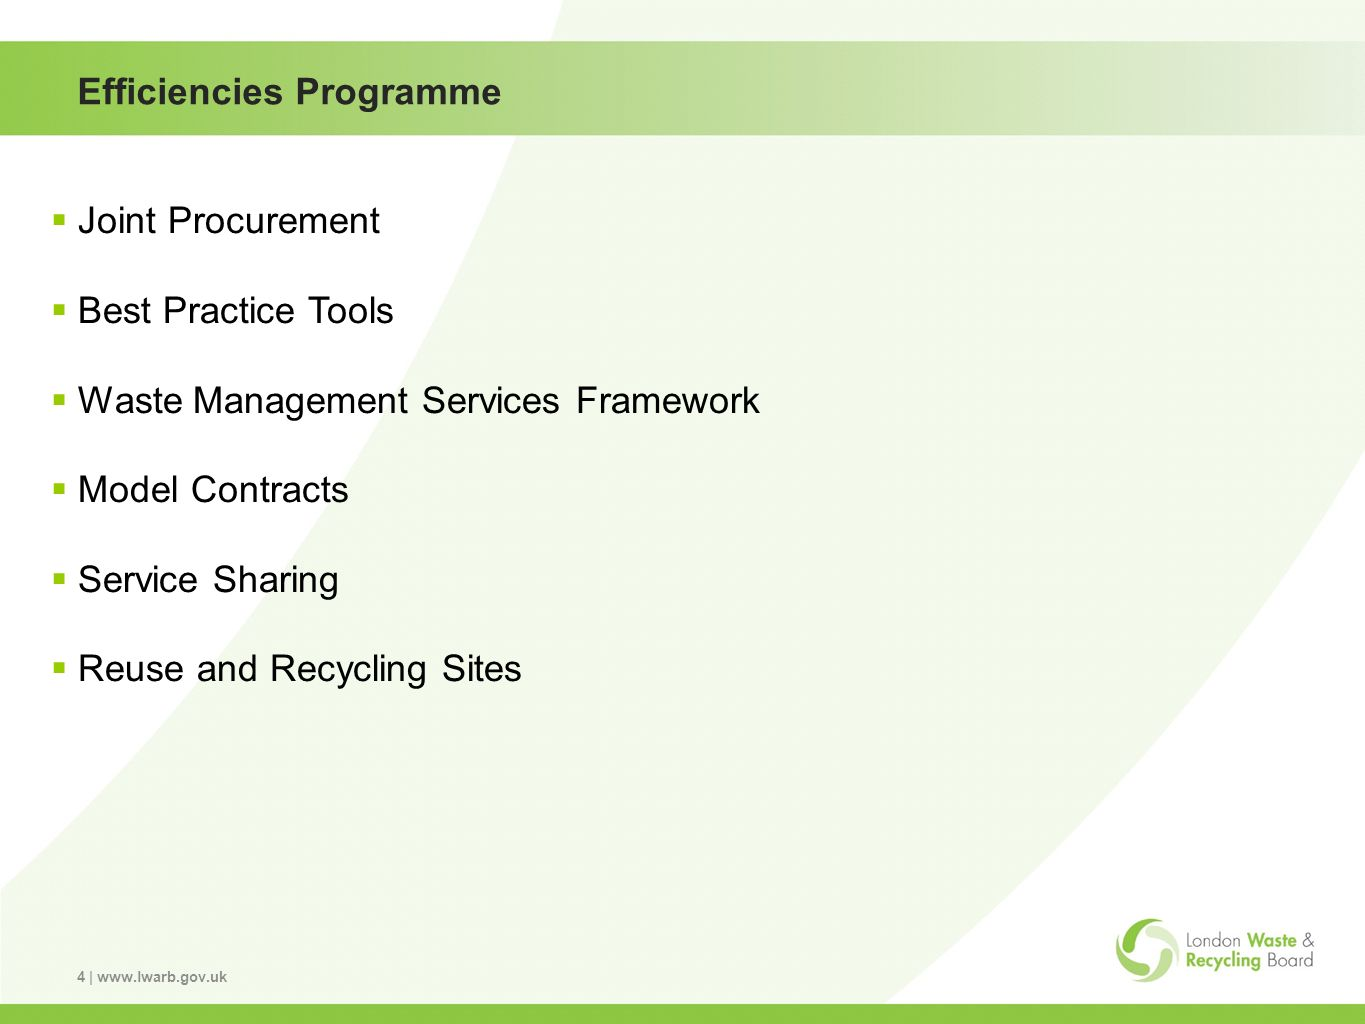 4 | www.lwarb.gov.uk Efficiencies Programme Joint Procurement Best Practice Tools Waste Management Services Framework Model Contracts Service Sharing Reuse and Recycling Sites